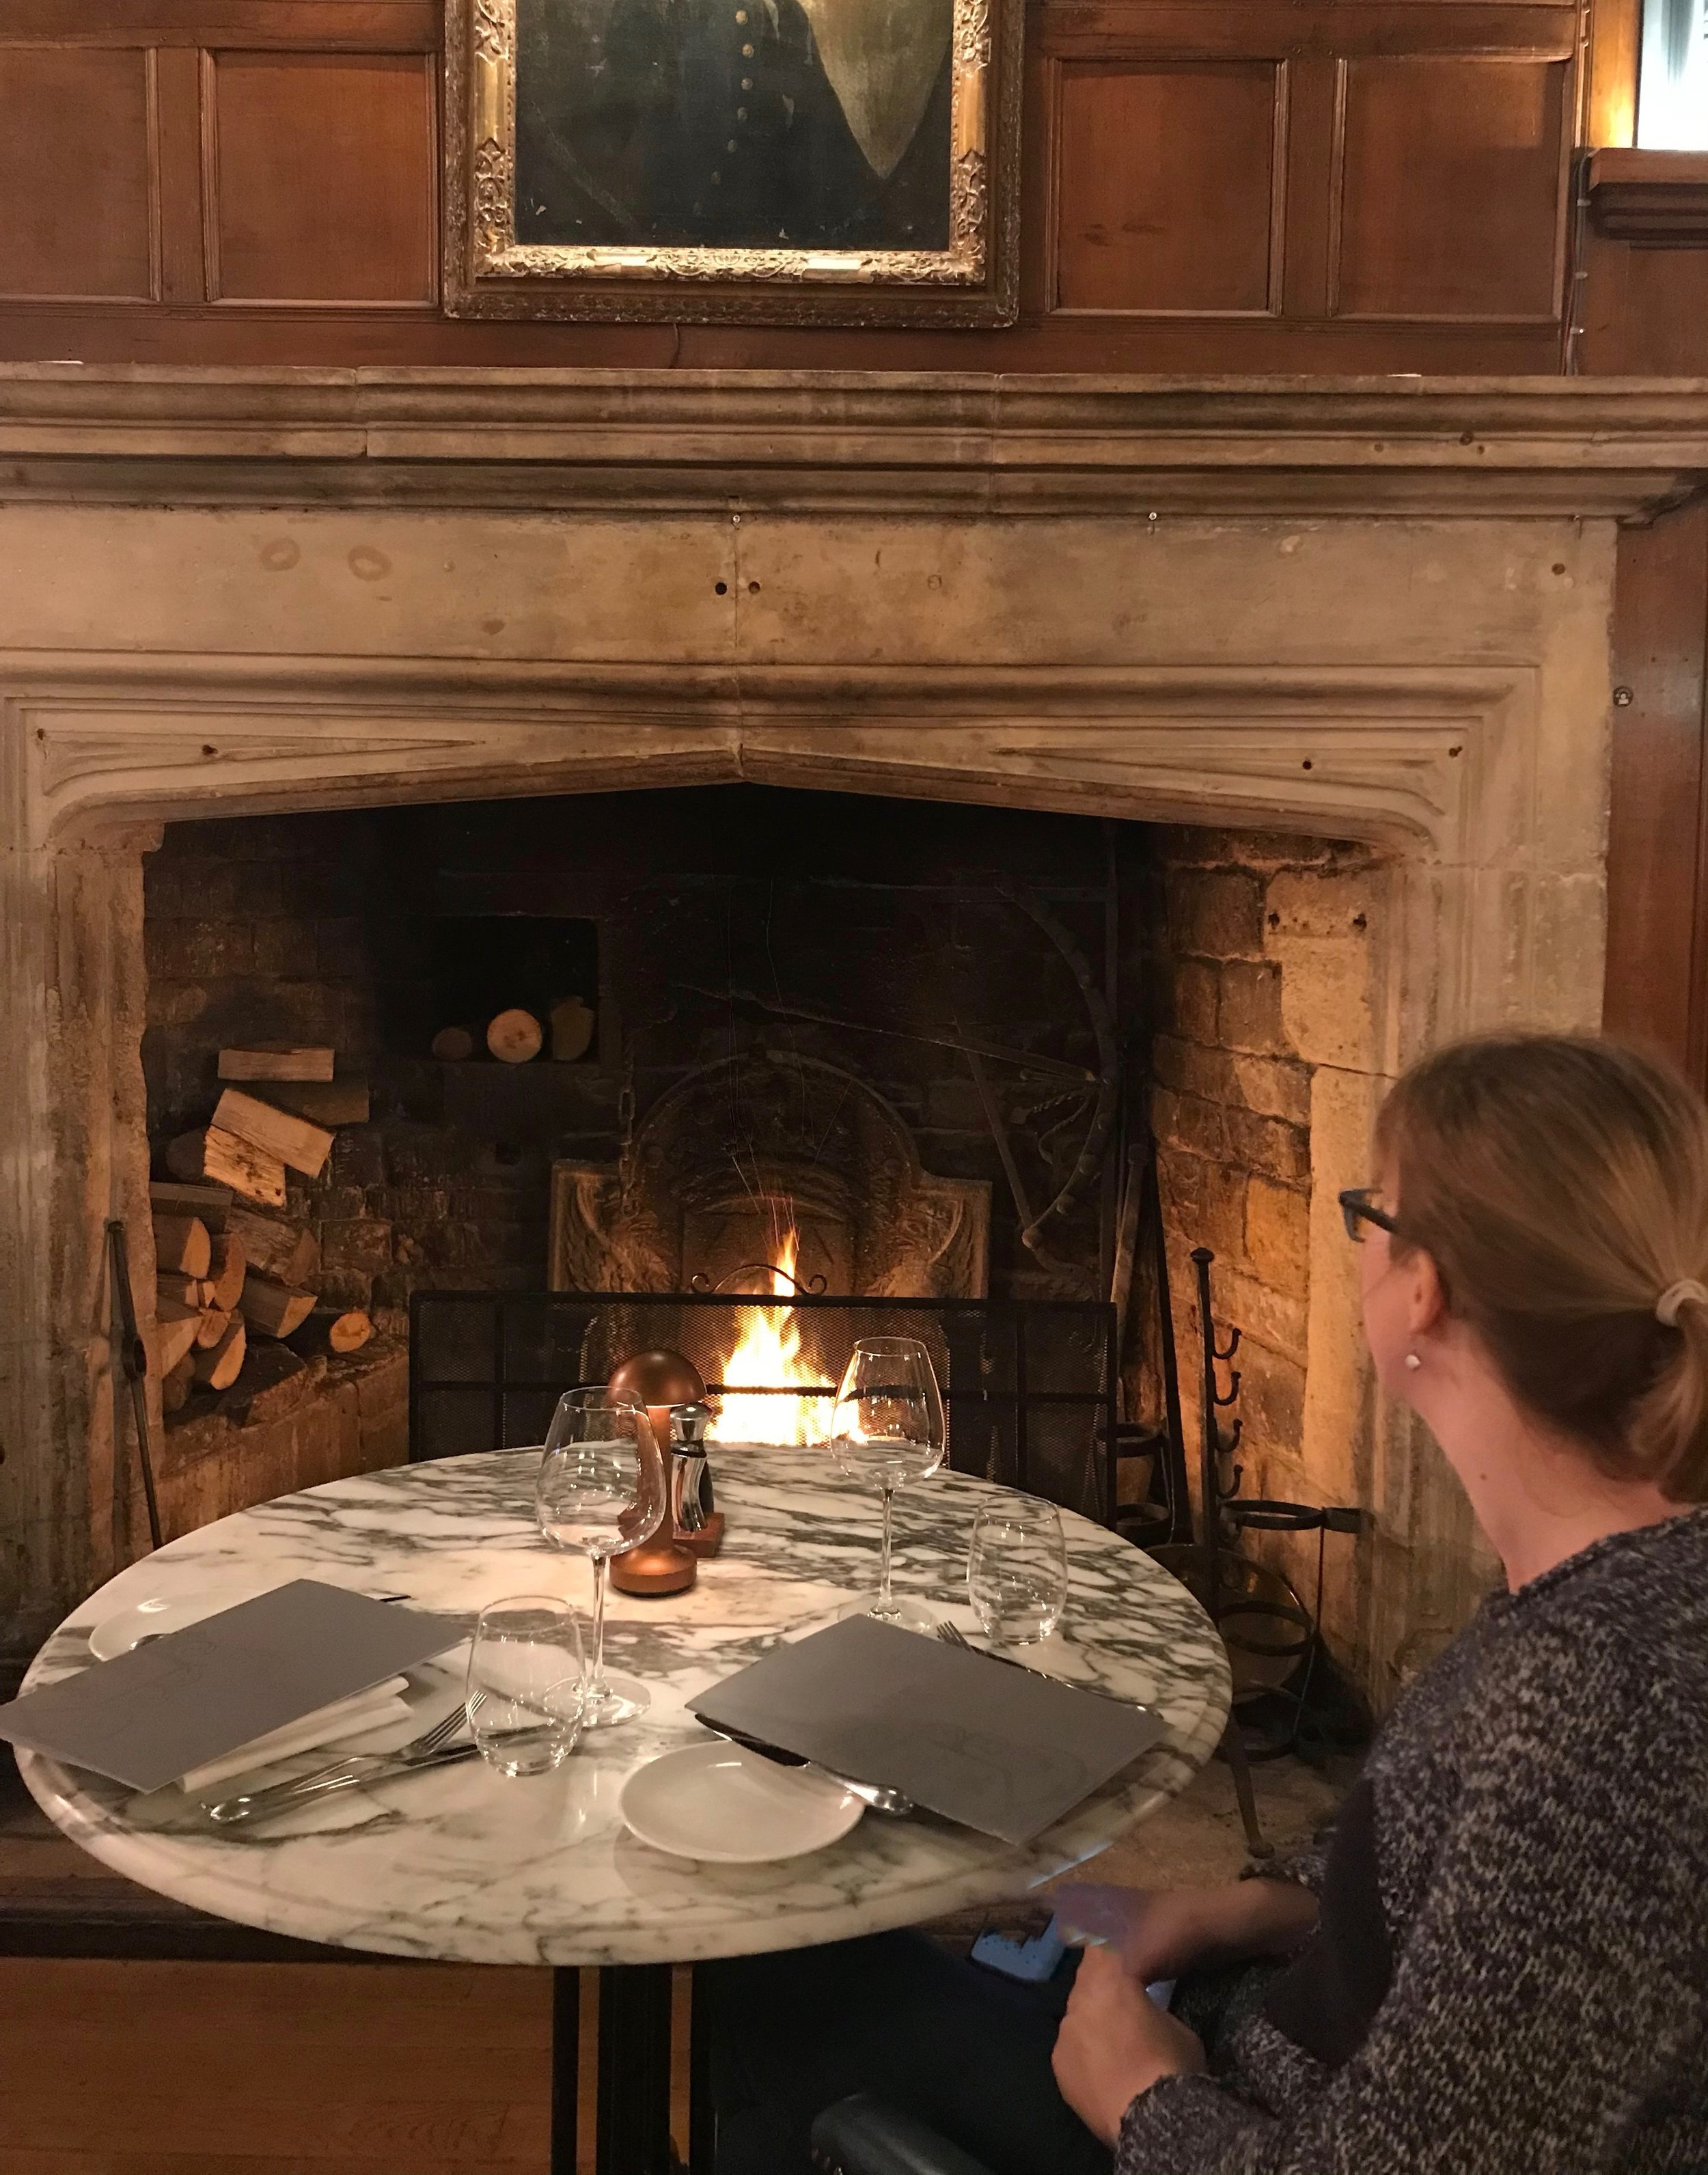 Dinner in front of a roaring fire? Oh, alright then